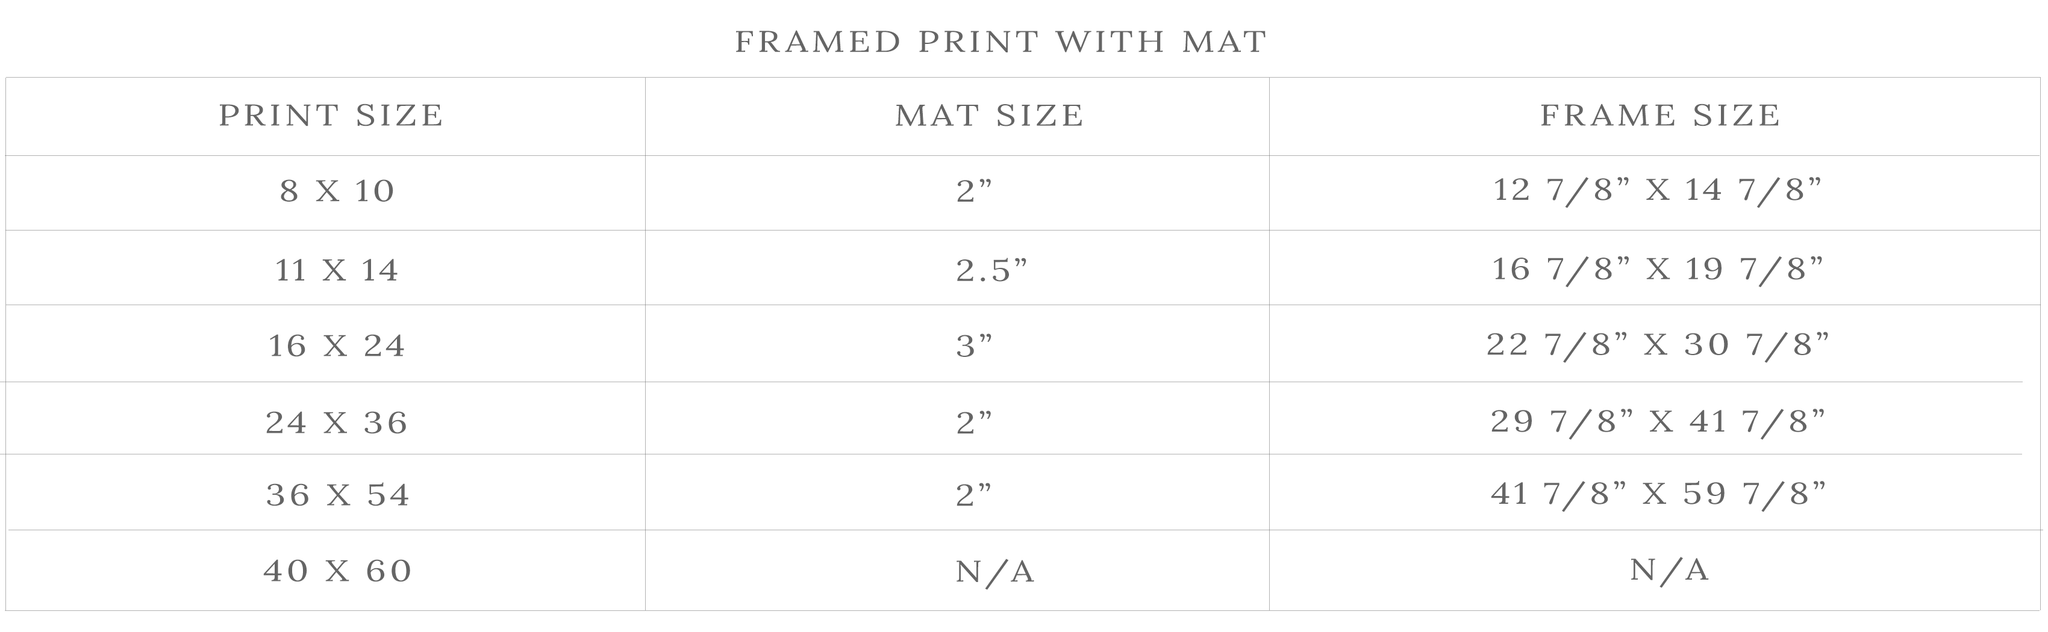 Size chart for frames and prints offered by local kauai photographer of landscape photos to buy.